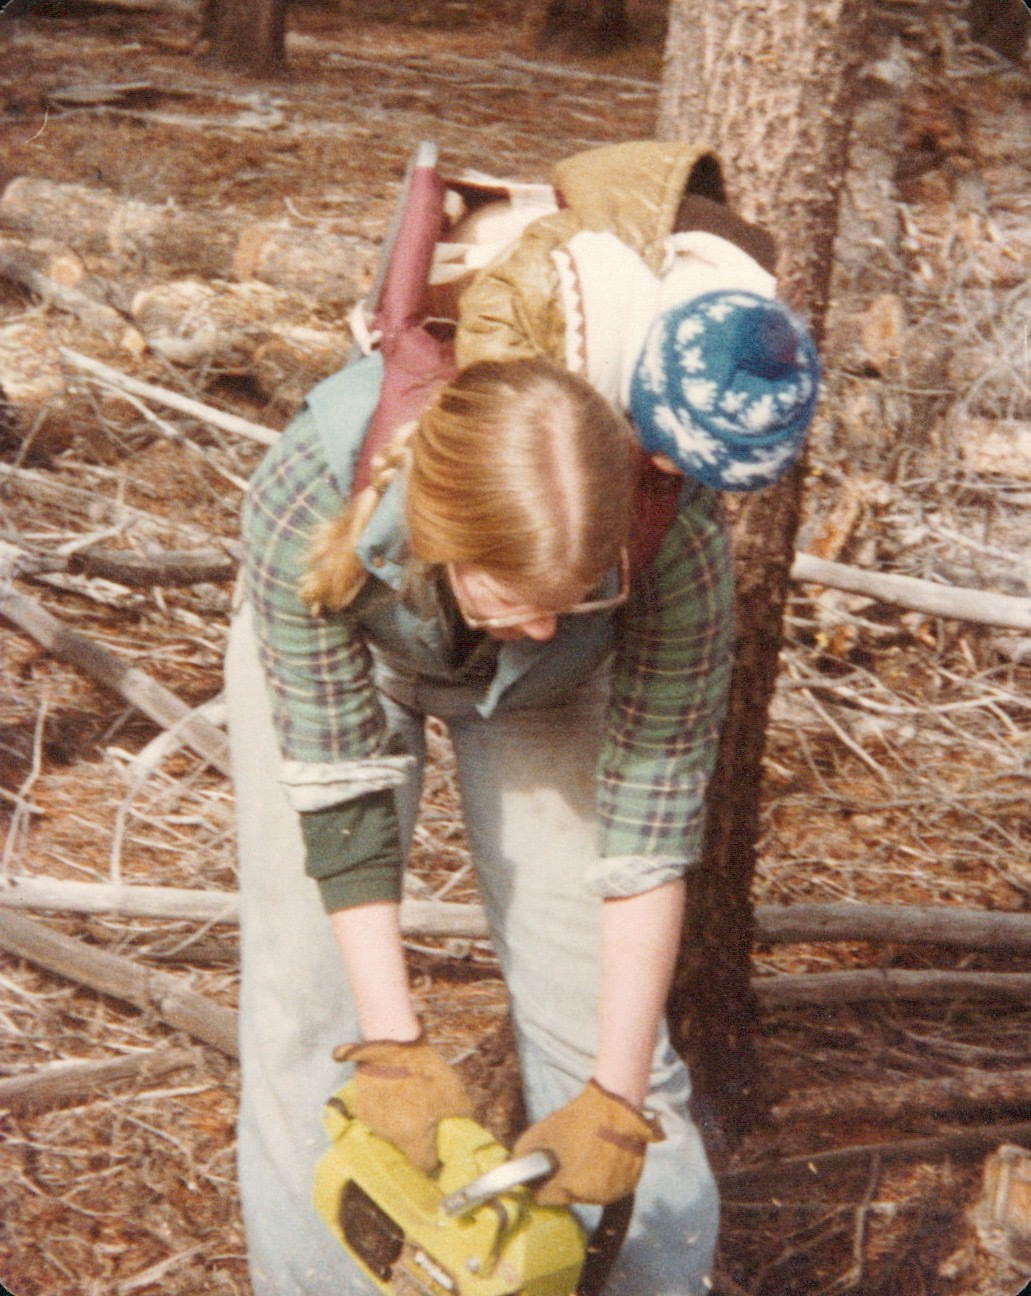 My Mom in the early 80's doing some chainsawing with me on